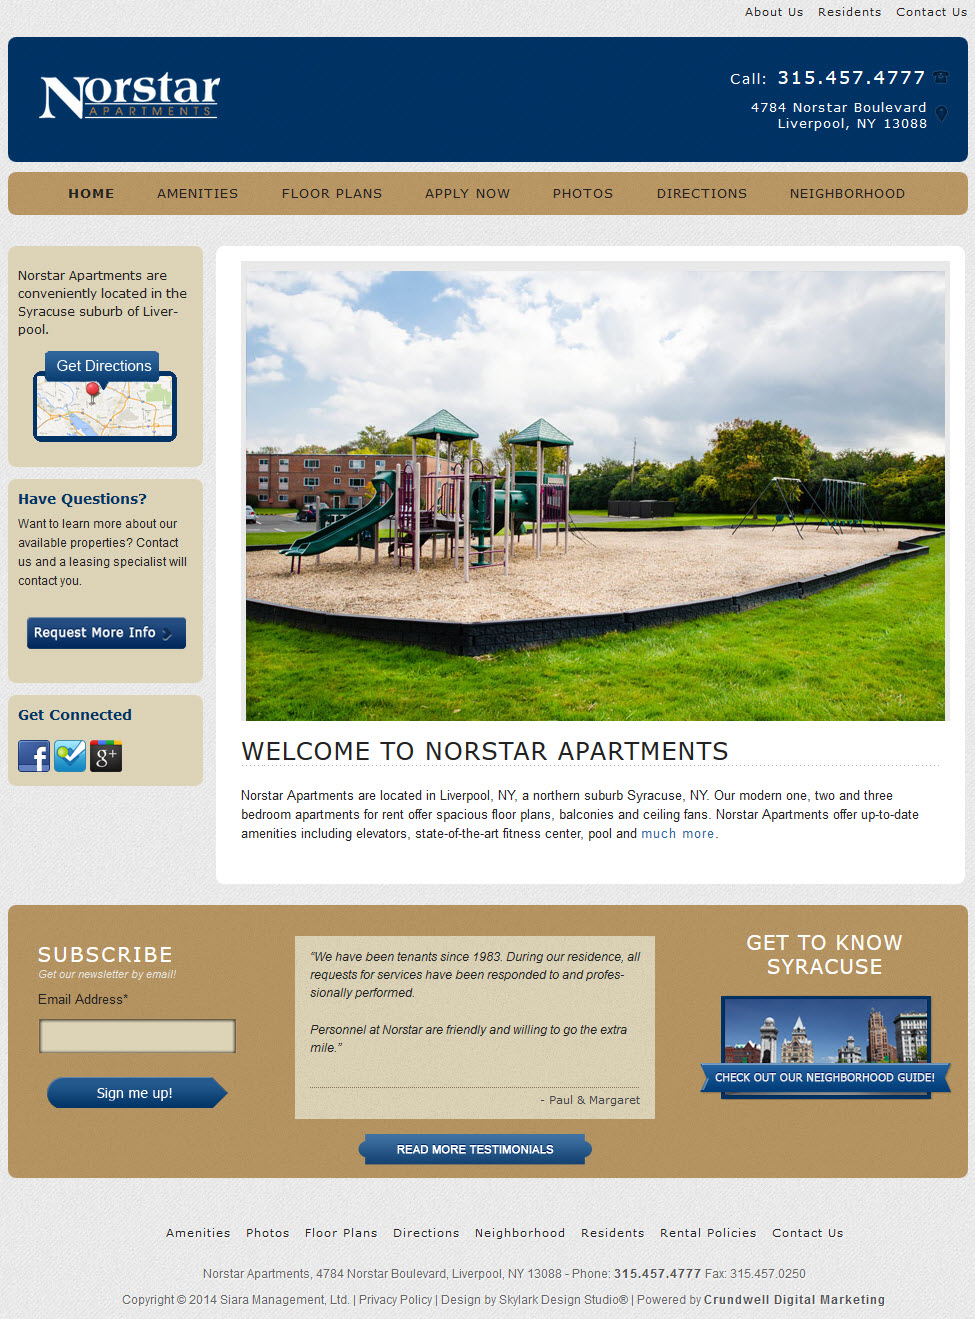 Norstar Apartments